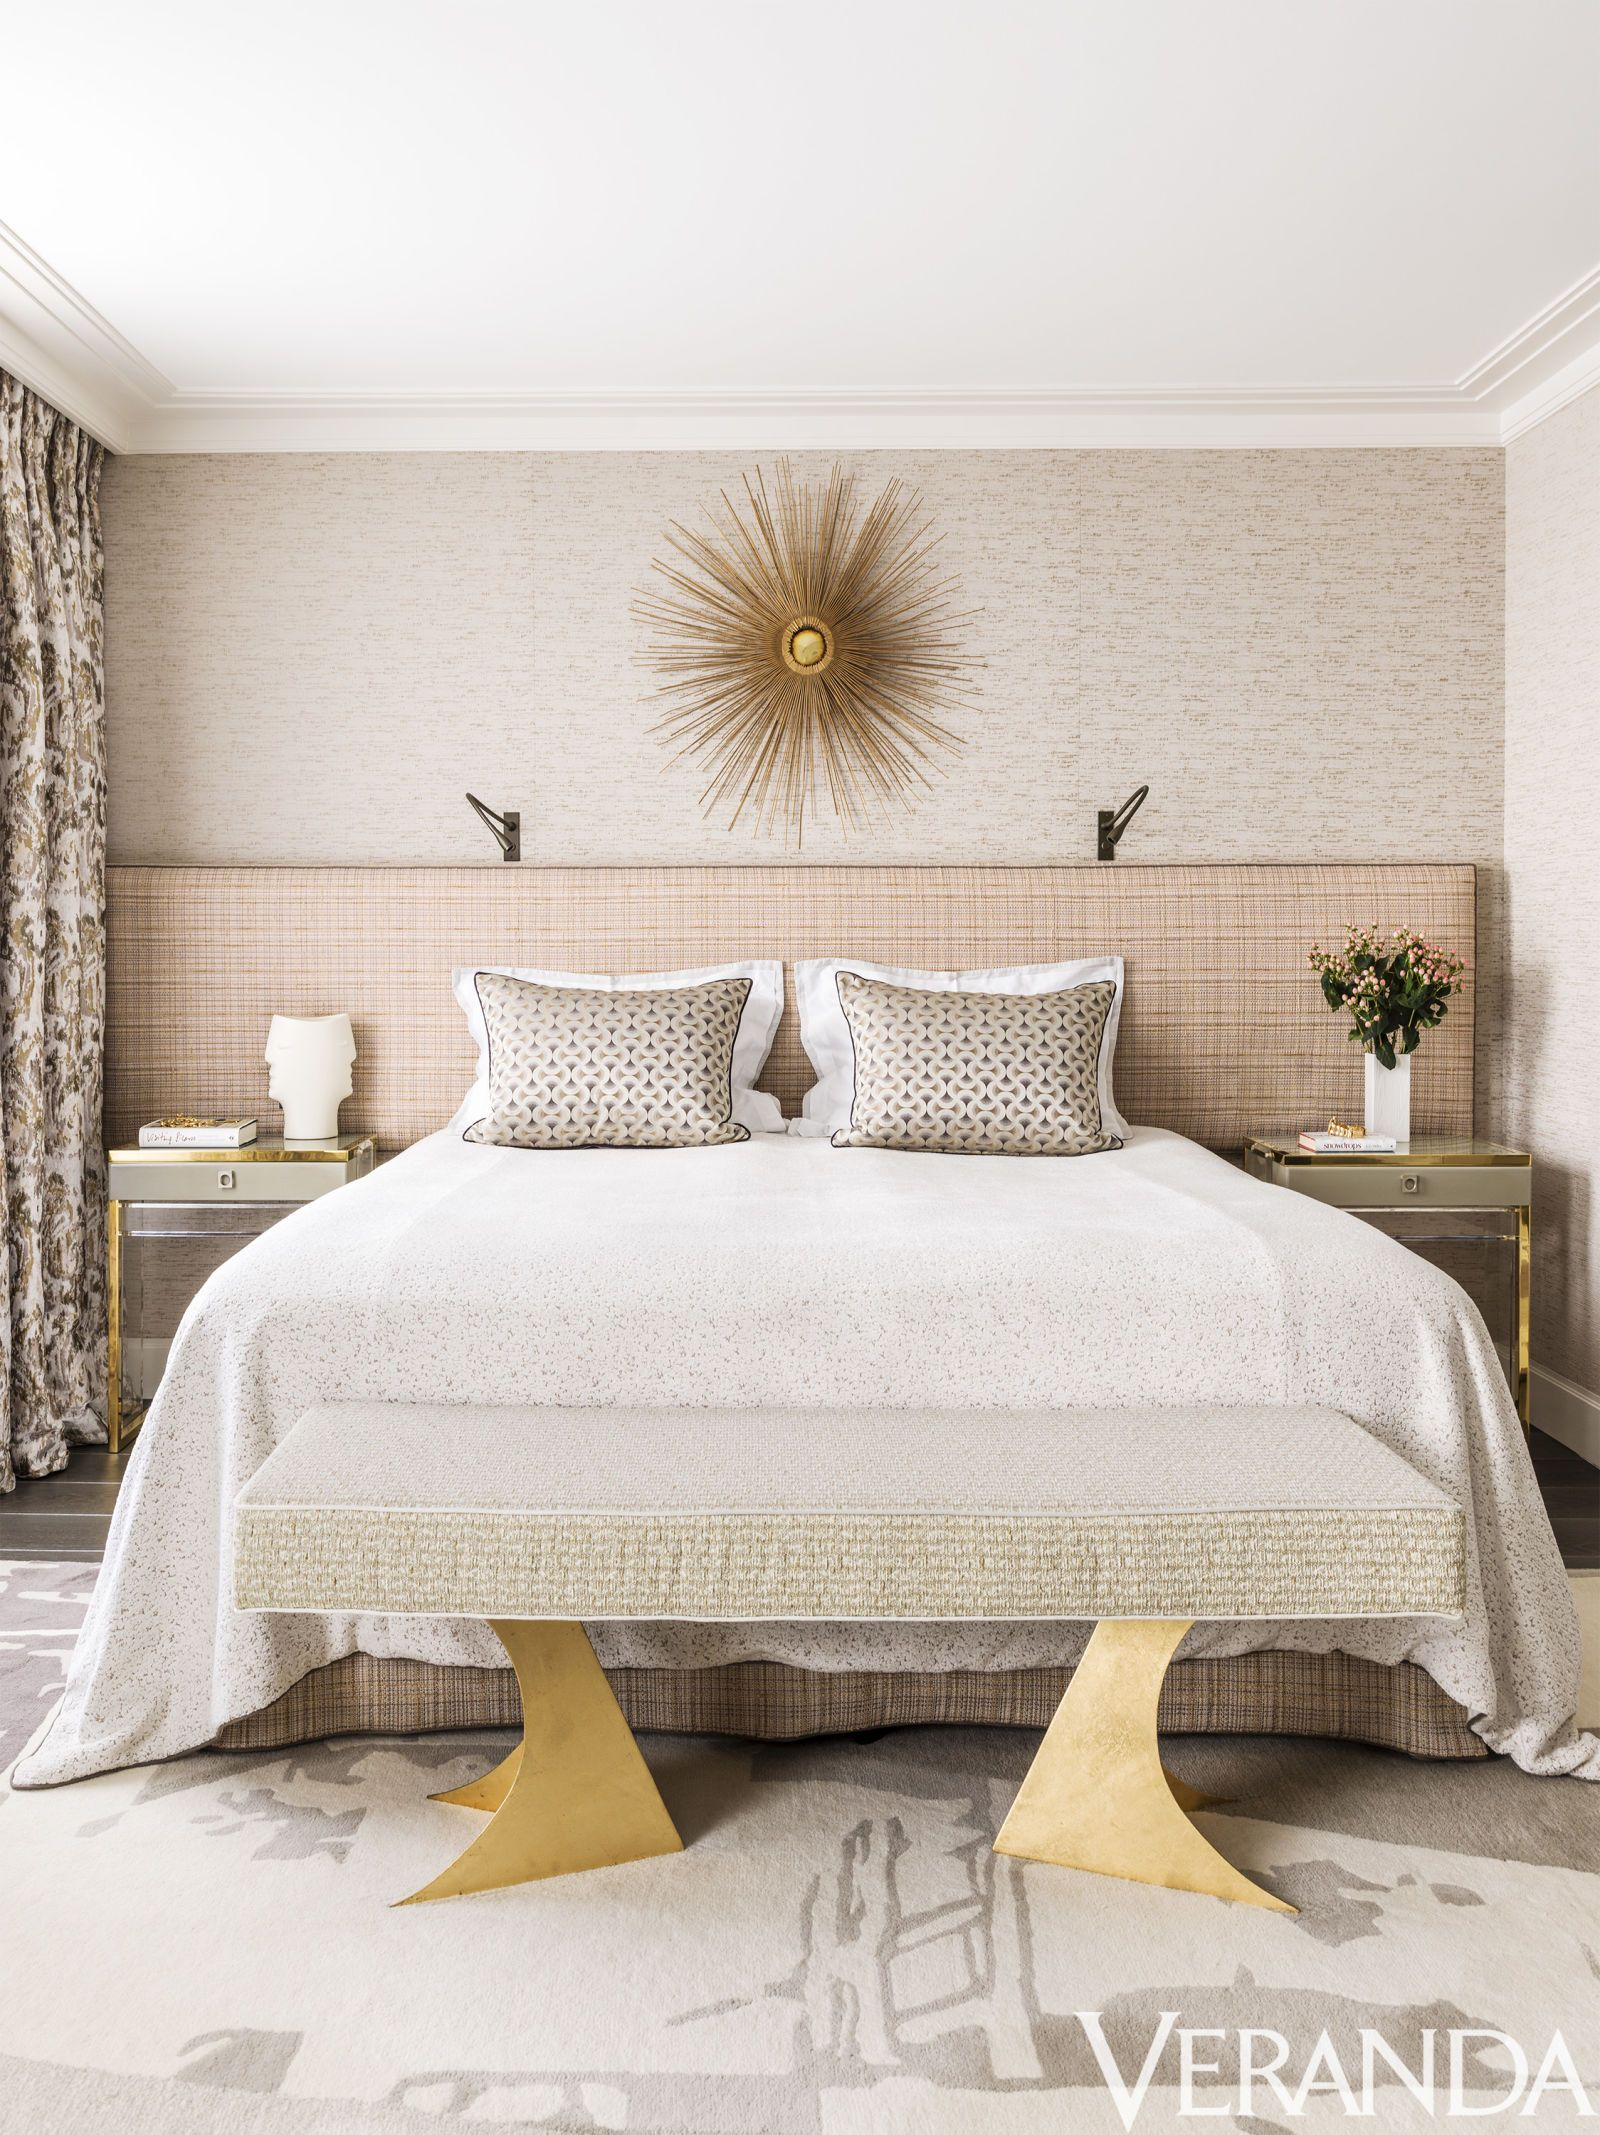 Designing Your Own Bedroom The Archives Veranda's Most Memorable Rooms  Beautiful Uxui